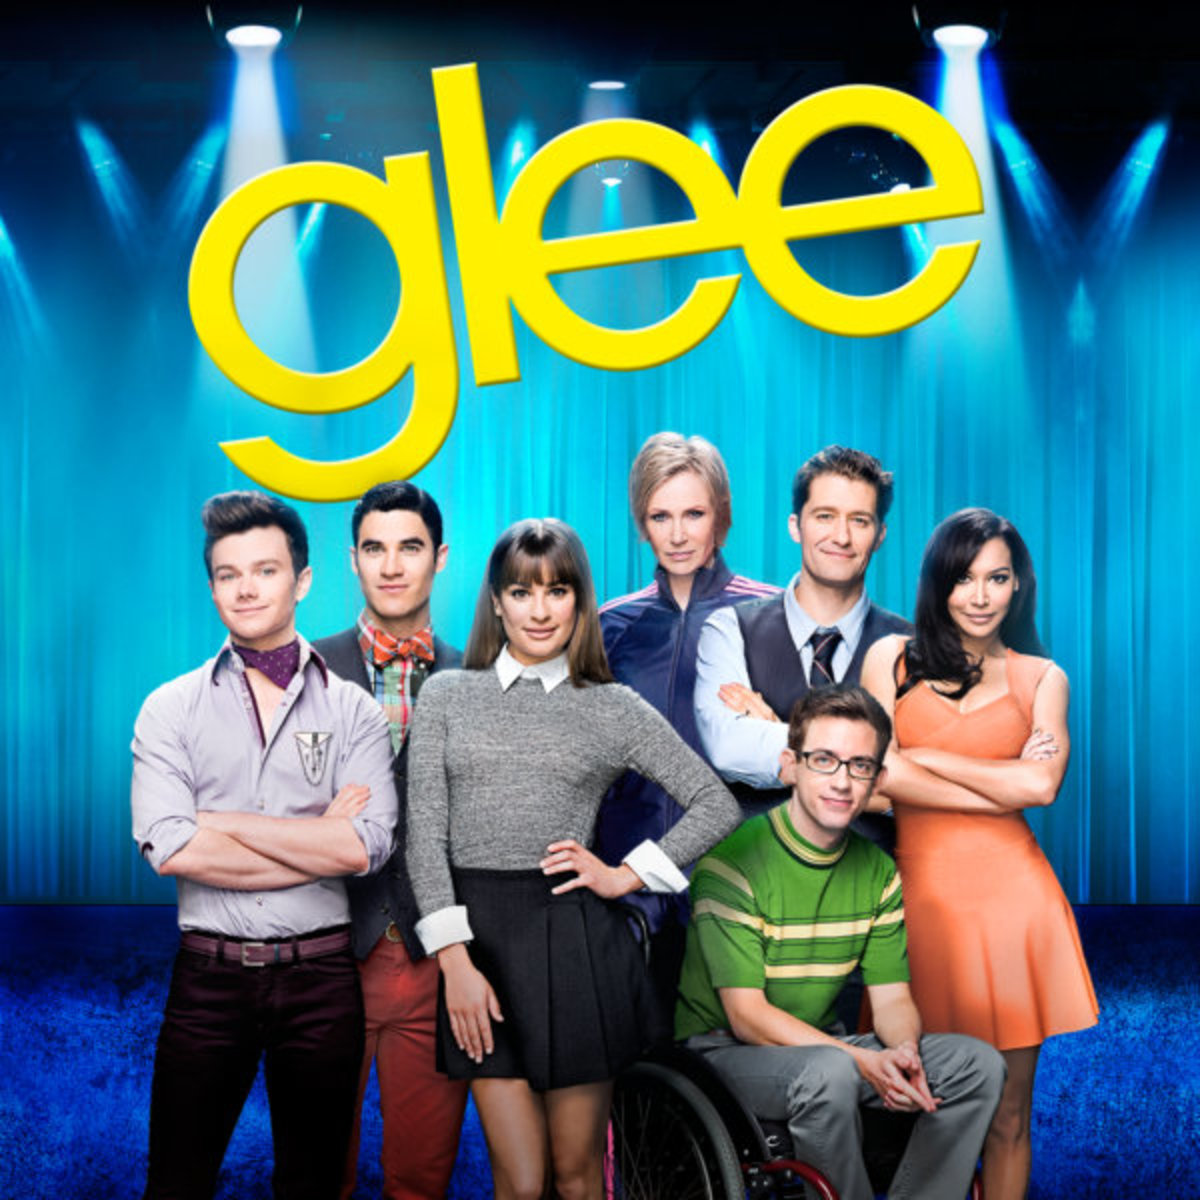 Why Glee is One of the Best Shows Ever? Understanding Its Impact on Teenagers